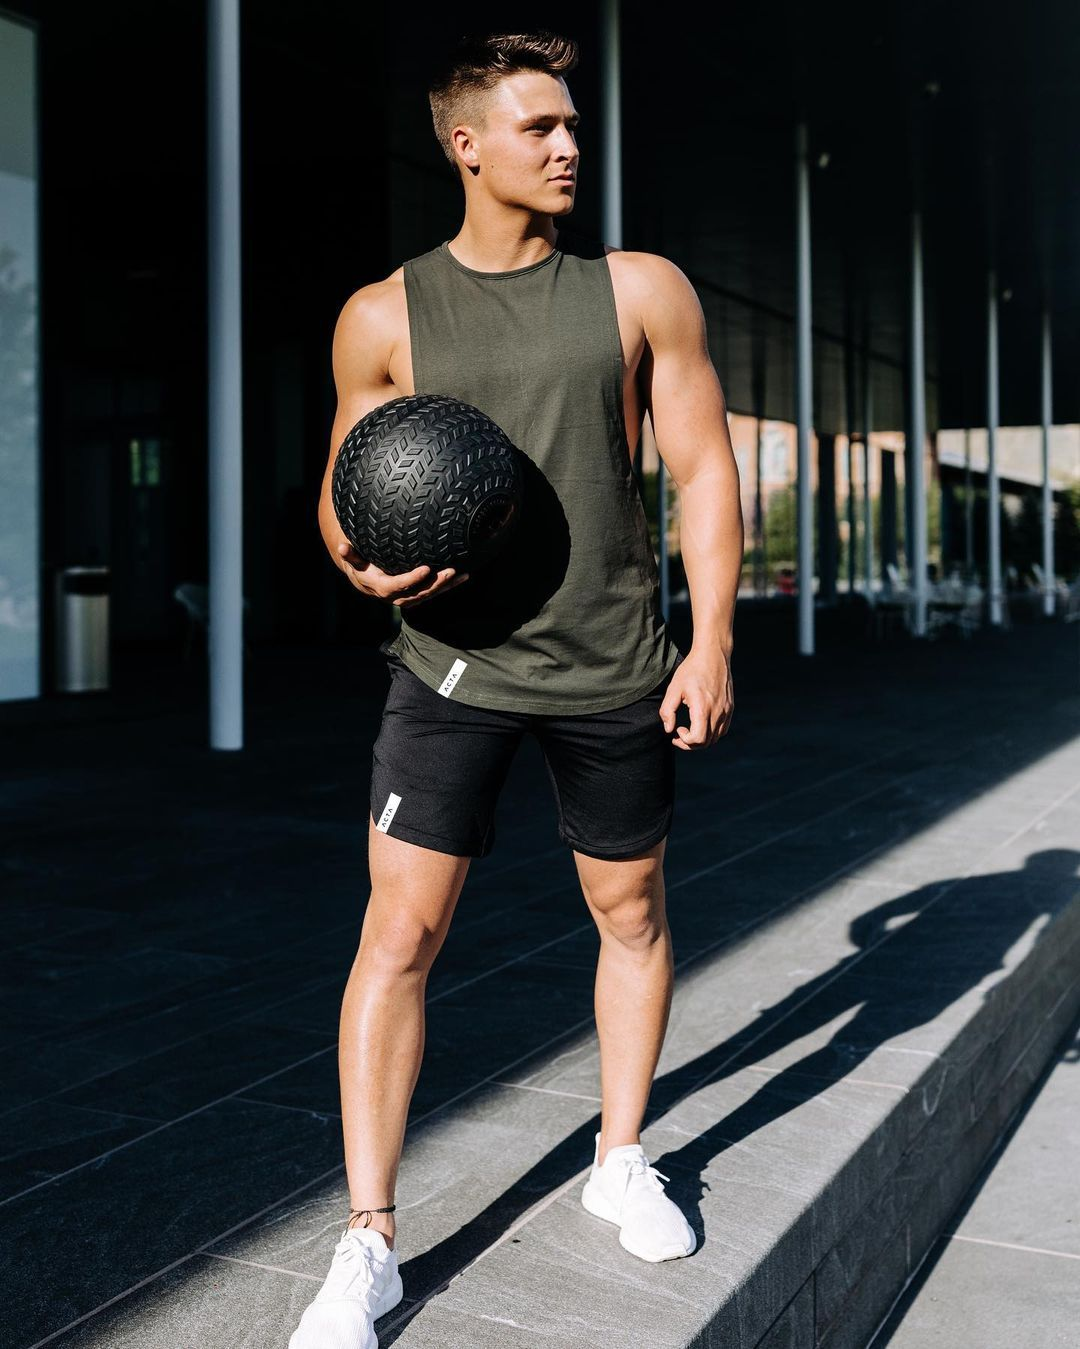 Acta On Instagram Greatness Is A Pursuit Not A Destination What Re Your Current Goals For Either In Or Out Of The In 2021 Fitness Photography Fitness Fitness Body